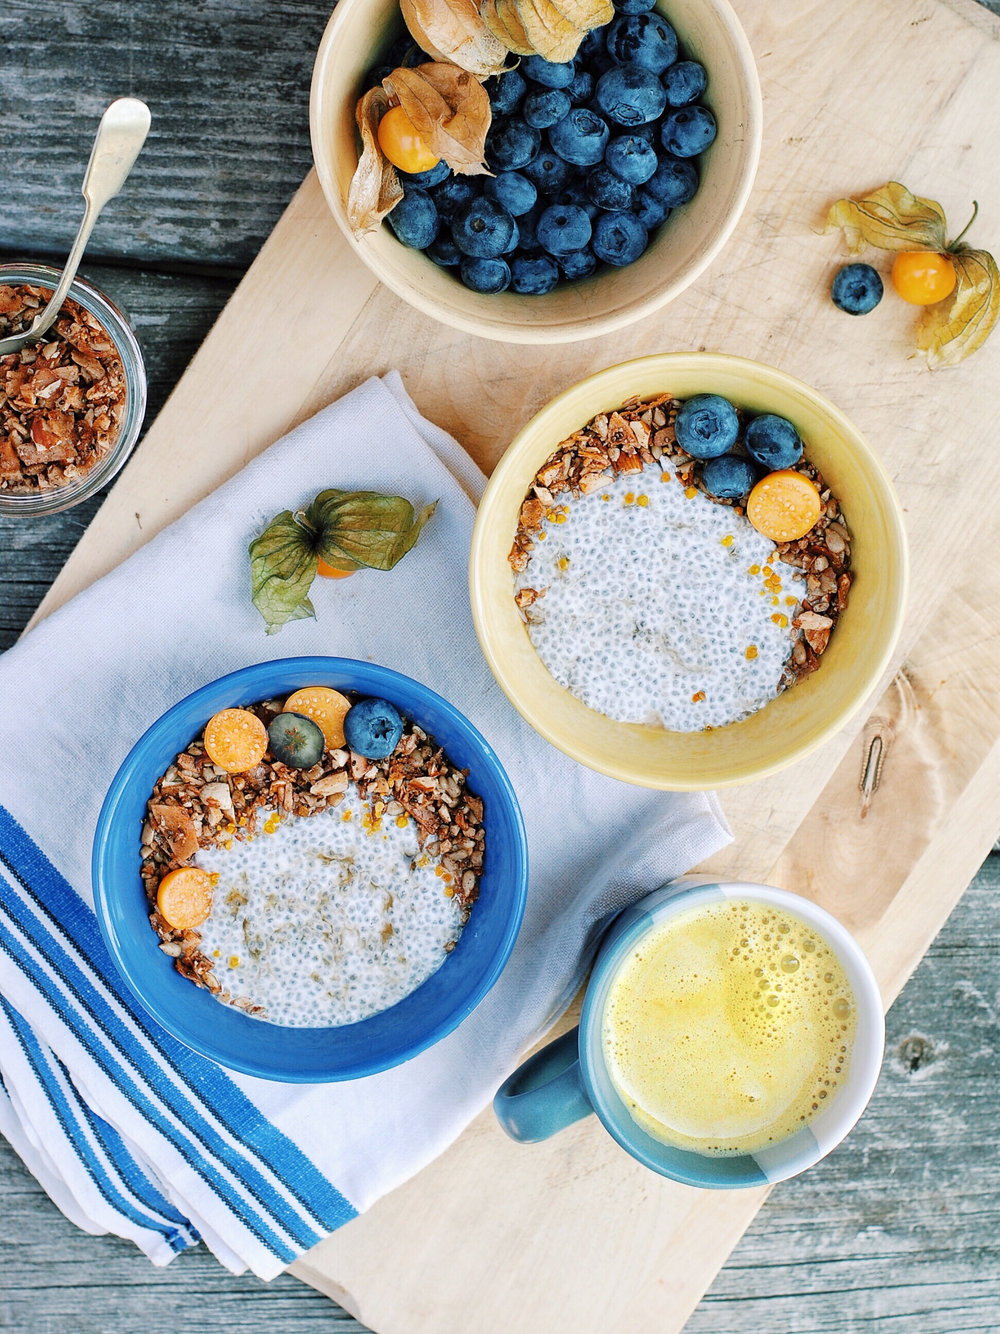 Coconut Chia Pudding with Super Crunchy Grain-Free Granola - Foody First - A super easy breakfast, snack, or lunch! Grain-free, filled with healthy fats and lots of crunch. Just so happens to be paleo, dairy free, gluten free, vegan, refined sugar-free and DELICIOUS! #paleo #grainfree #granola #easybreakfast #vegan #chiapudding #crunchygranola #healthyfats #dairyfree #glutenfree #healthybreakfast #healthysnack